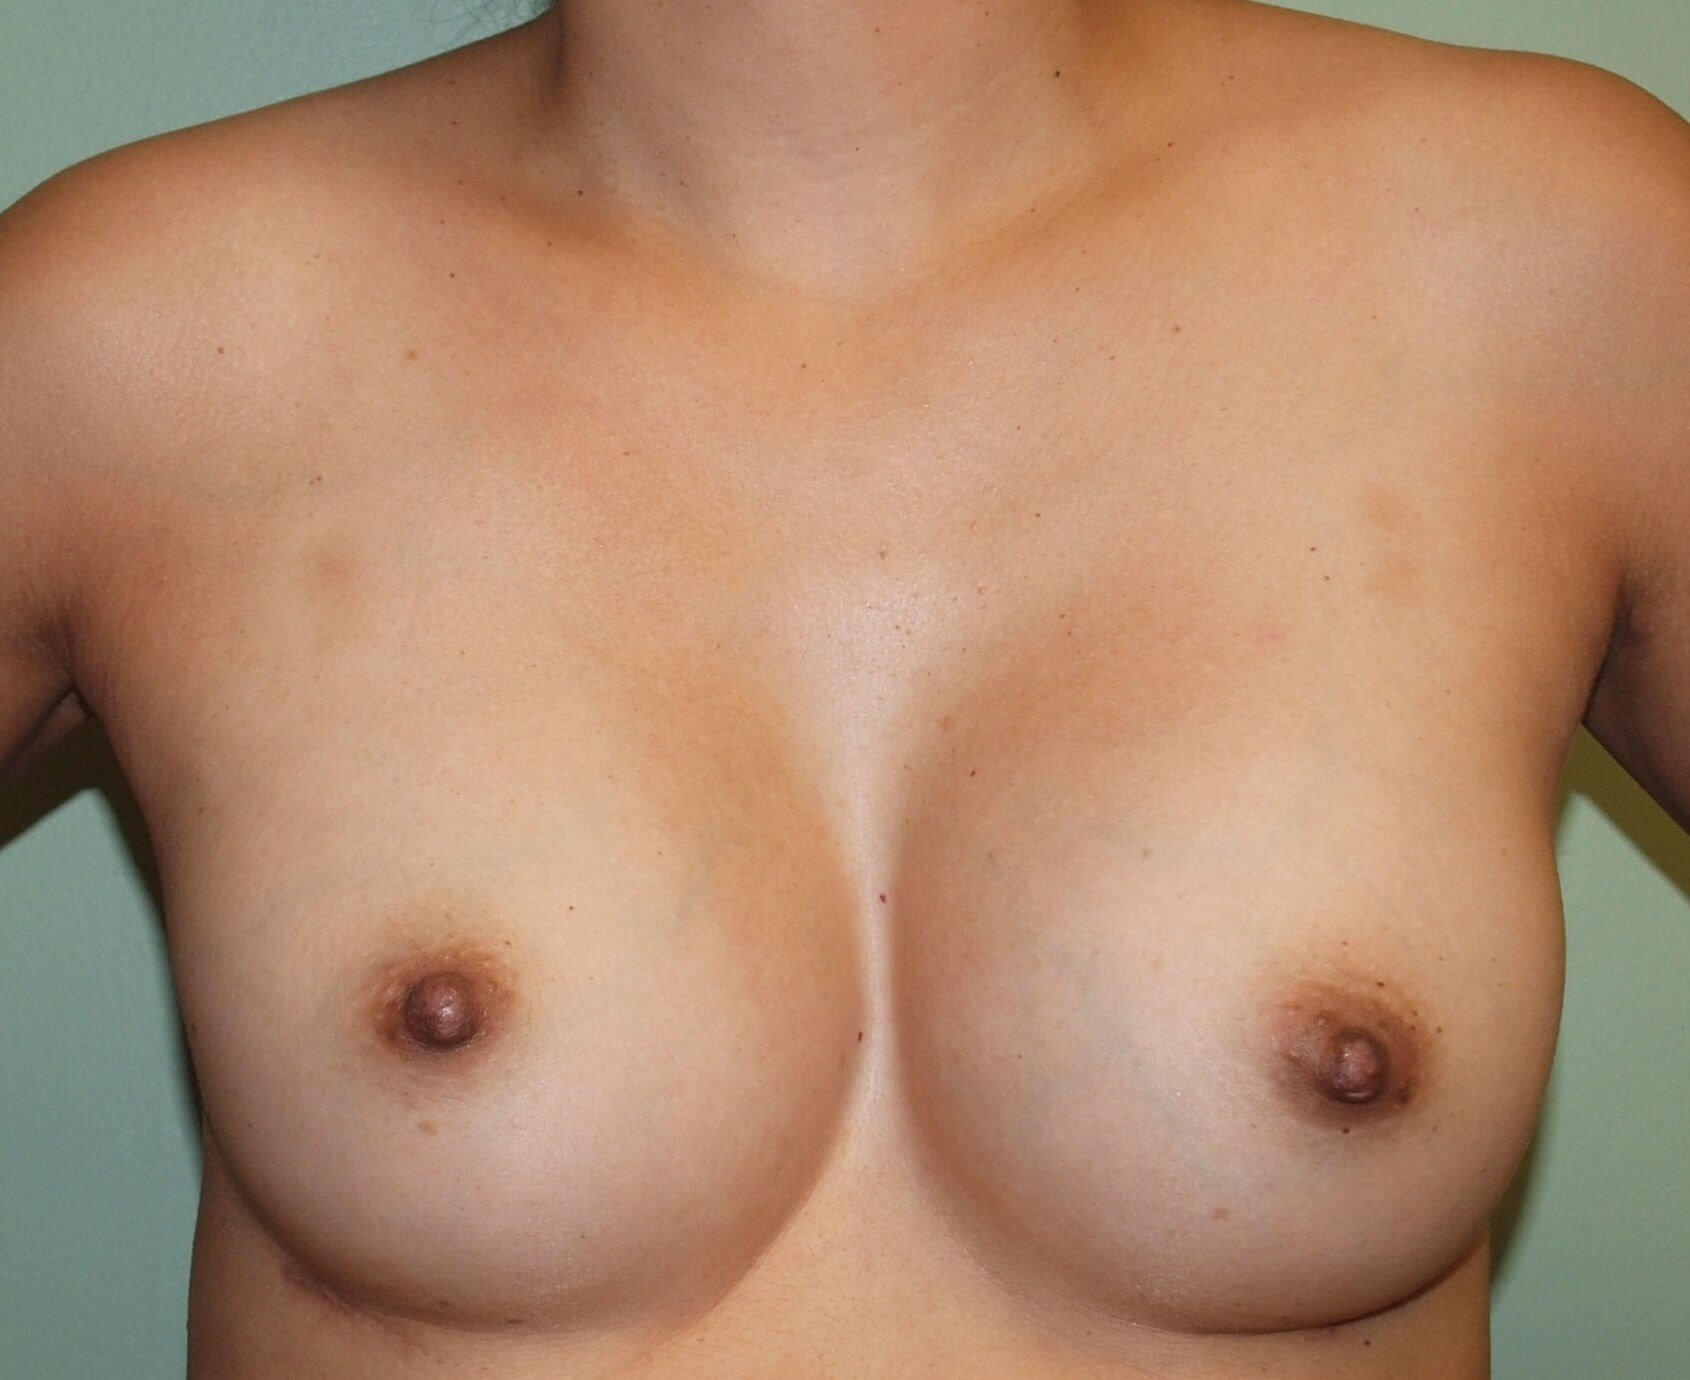 Asymmetry & Silicone Implants After